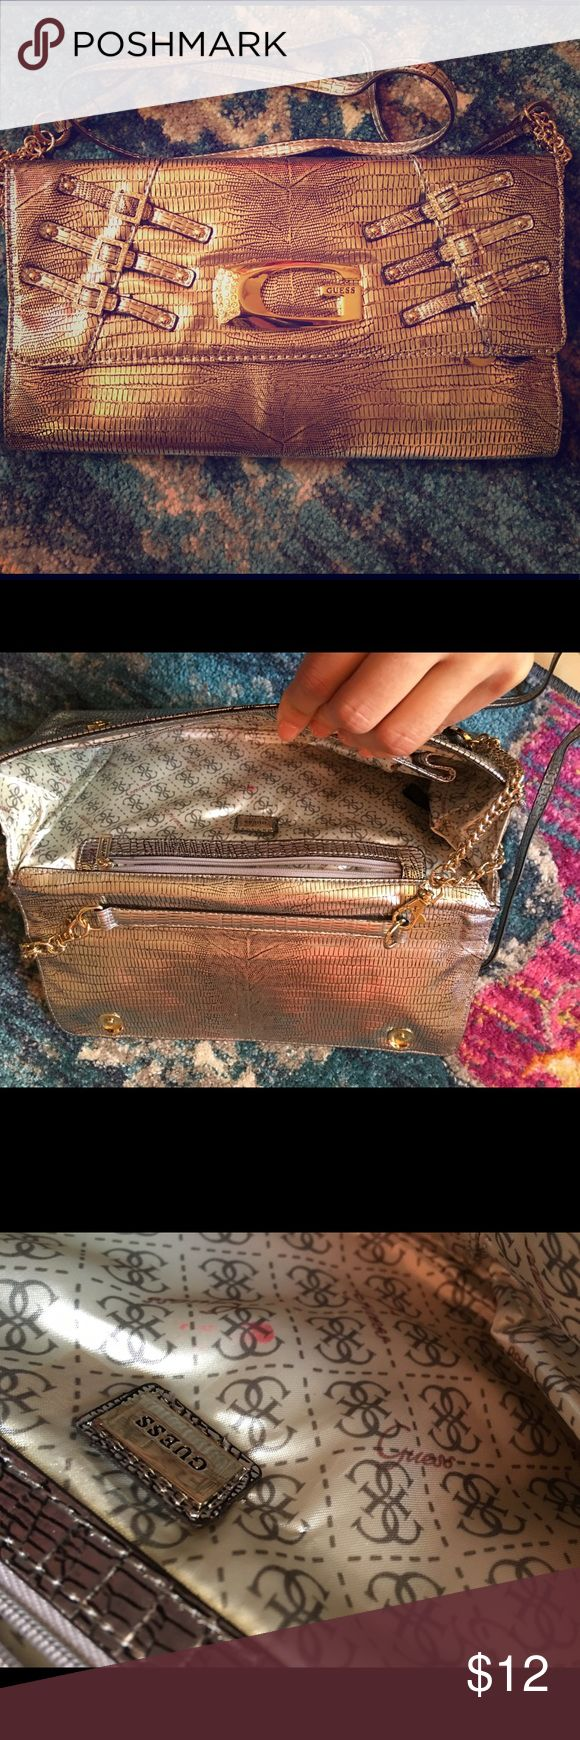 Guess metallic clutch Used several times.  It does have mark (as shown). Great condition.  Take it for a spin in the town⚡️🌟⭐️☺️ Bags Clutches & Wristlets